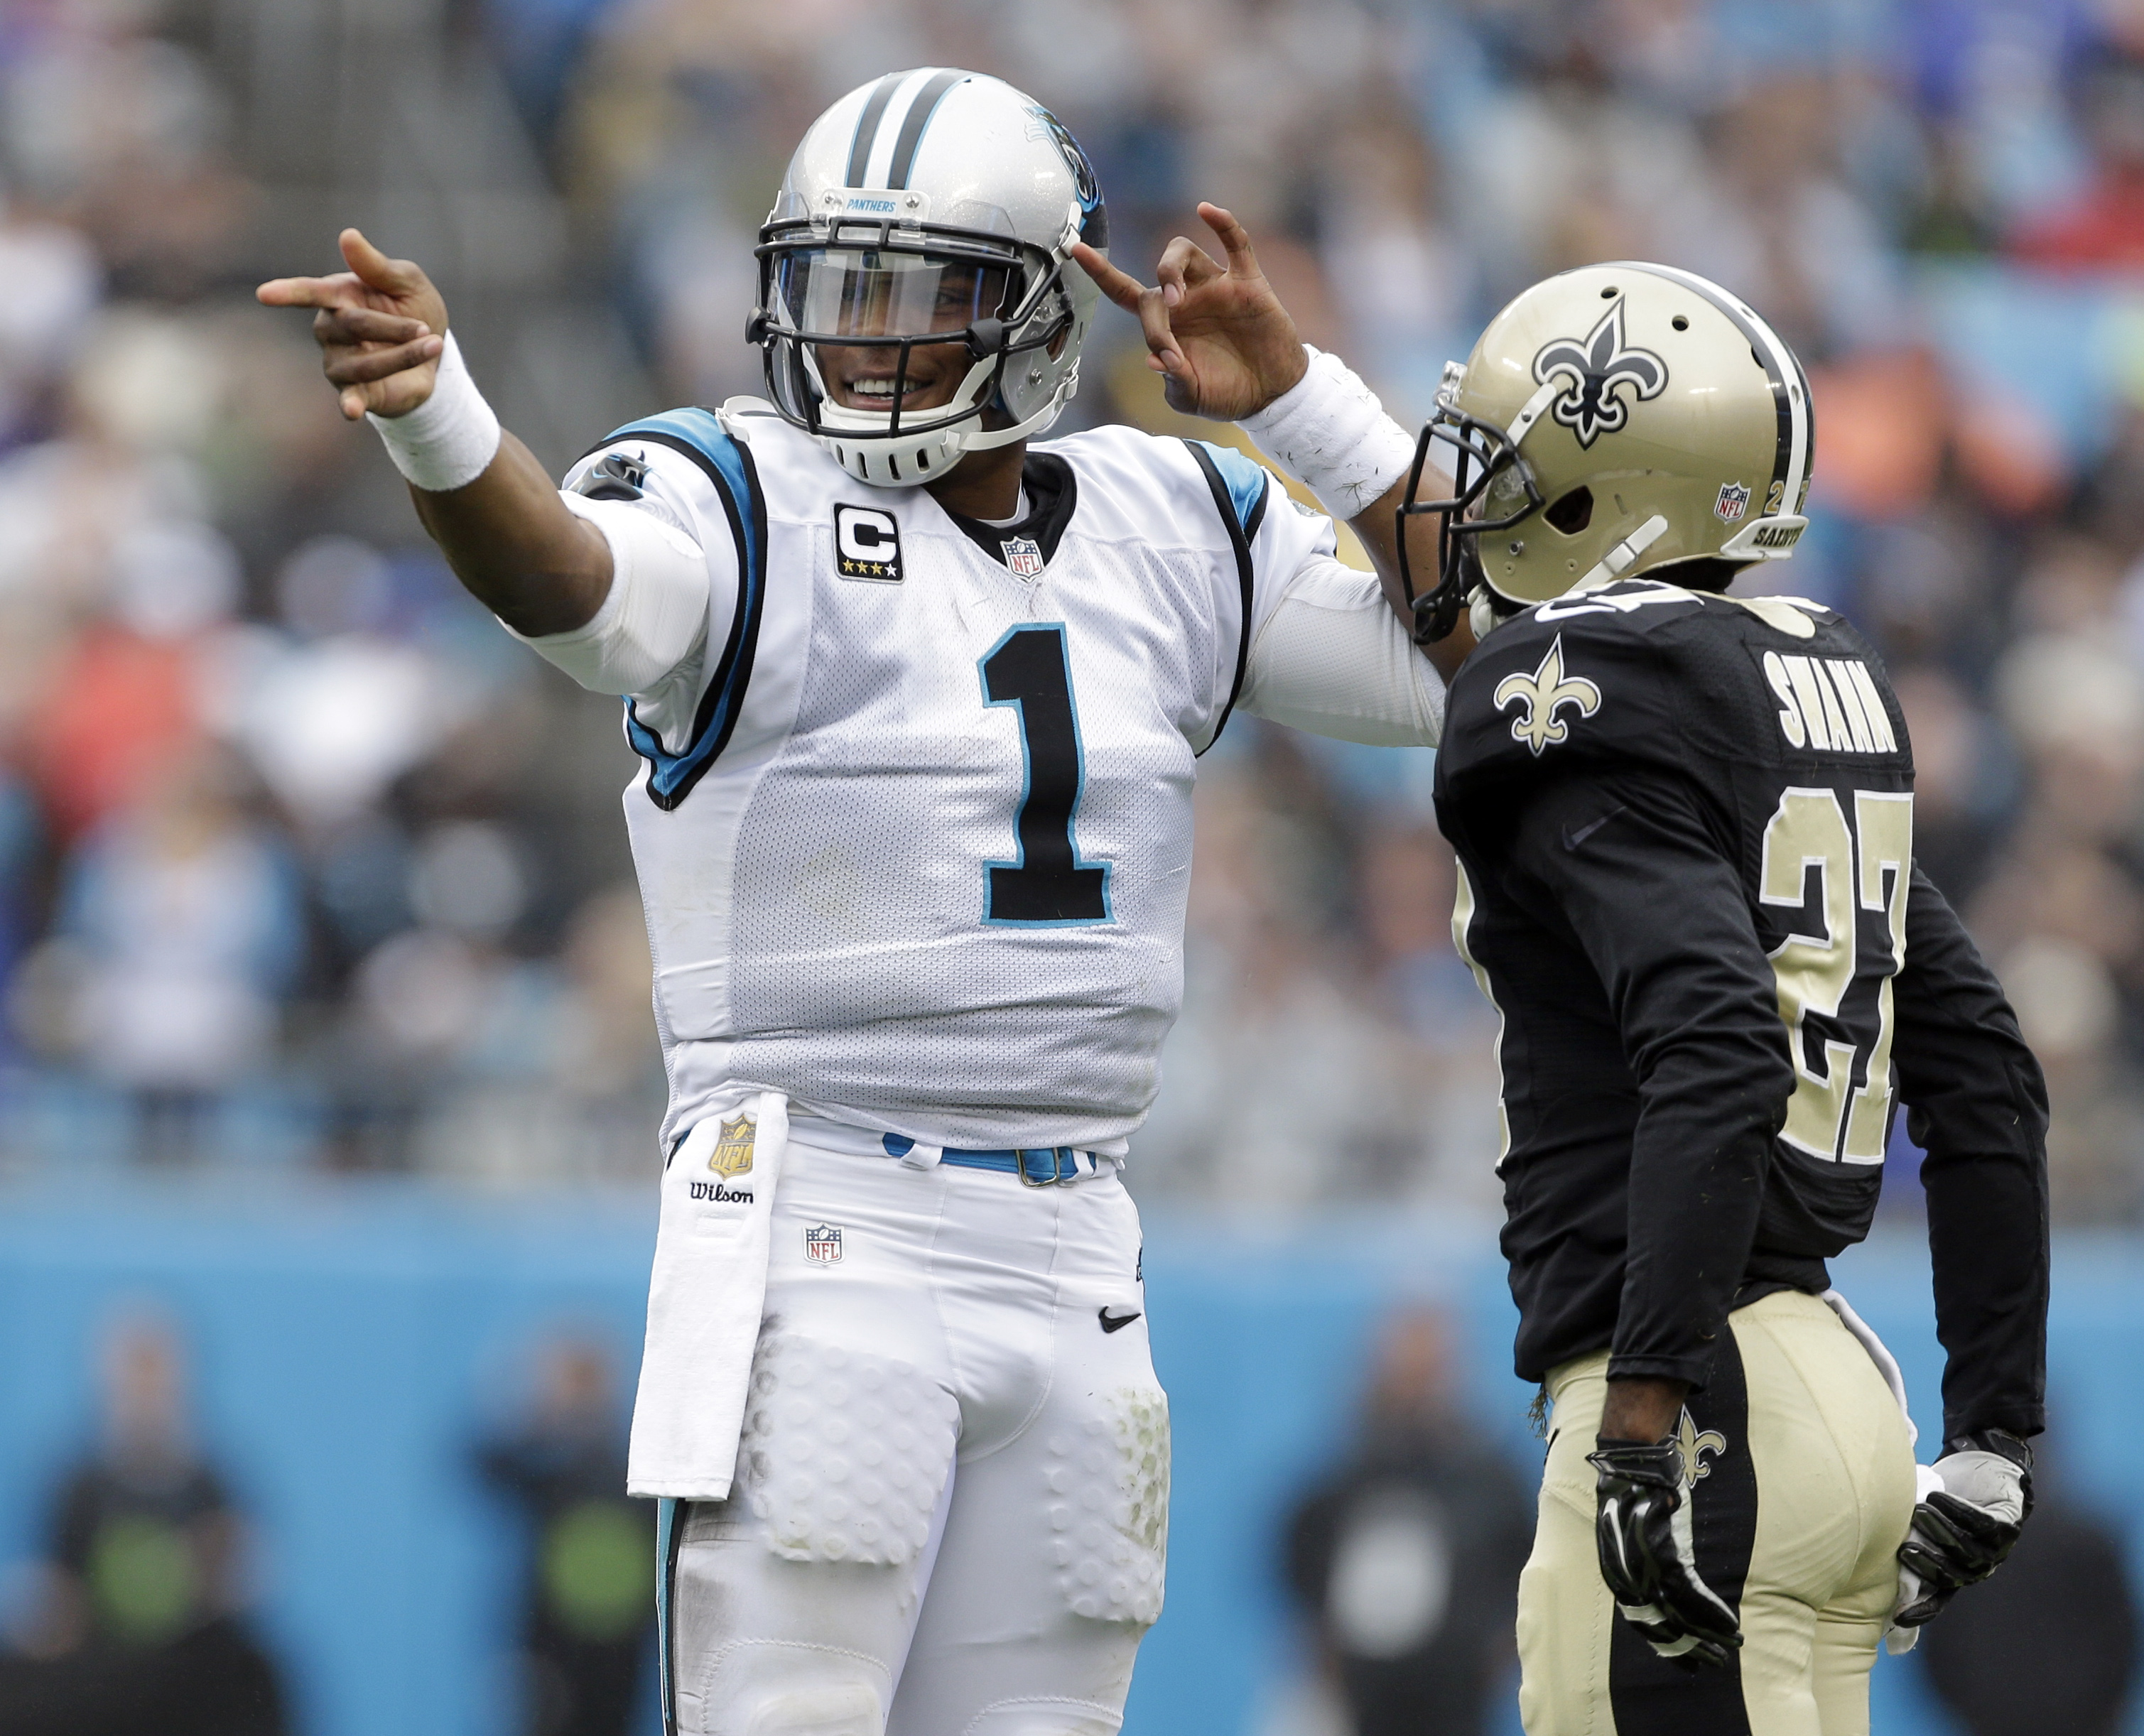 Carolina Panthers' Cam Newton (1) celebrates a first down in front of New Orleans Saints' Damian Swann (27) in the first half of an NFL football game in Charlotte, N.C., Sunday, Sept. 27, 2015. (AP Photo/Bob Leverone)